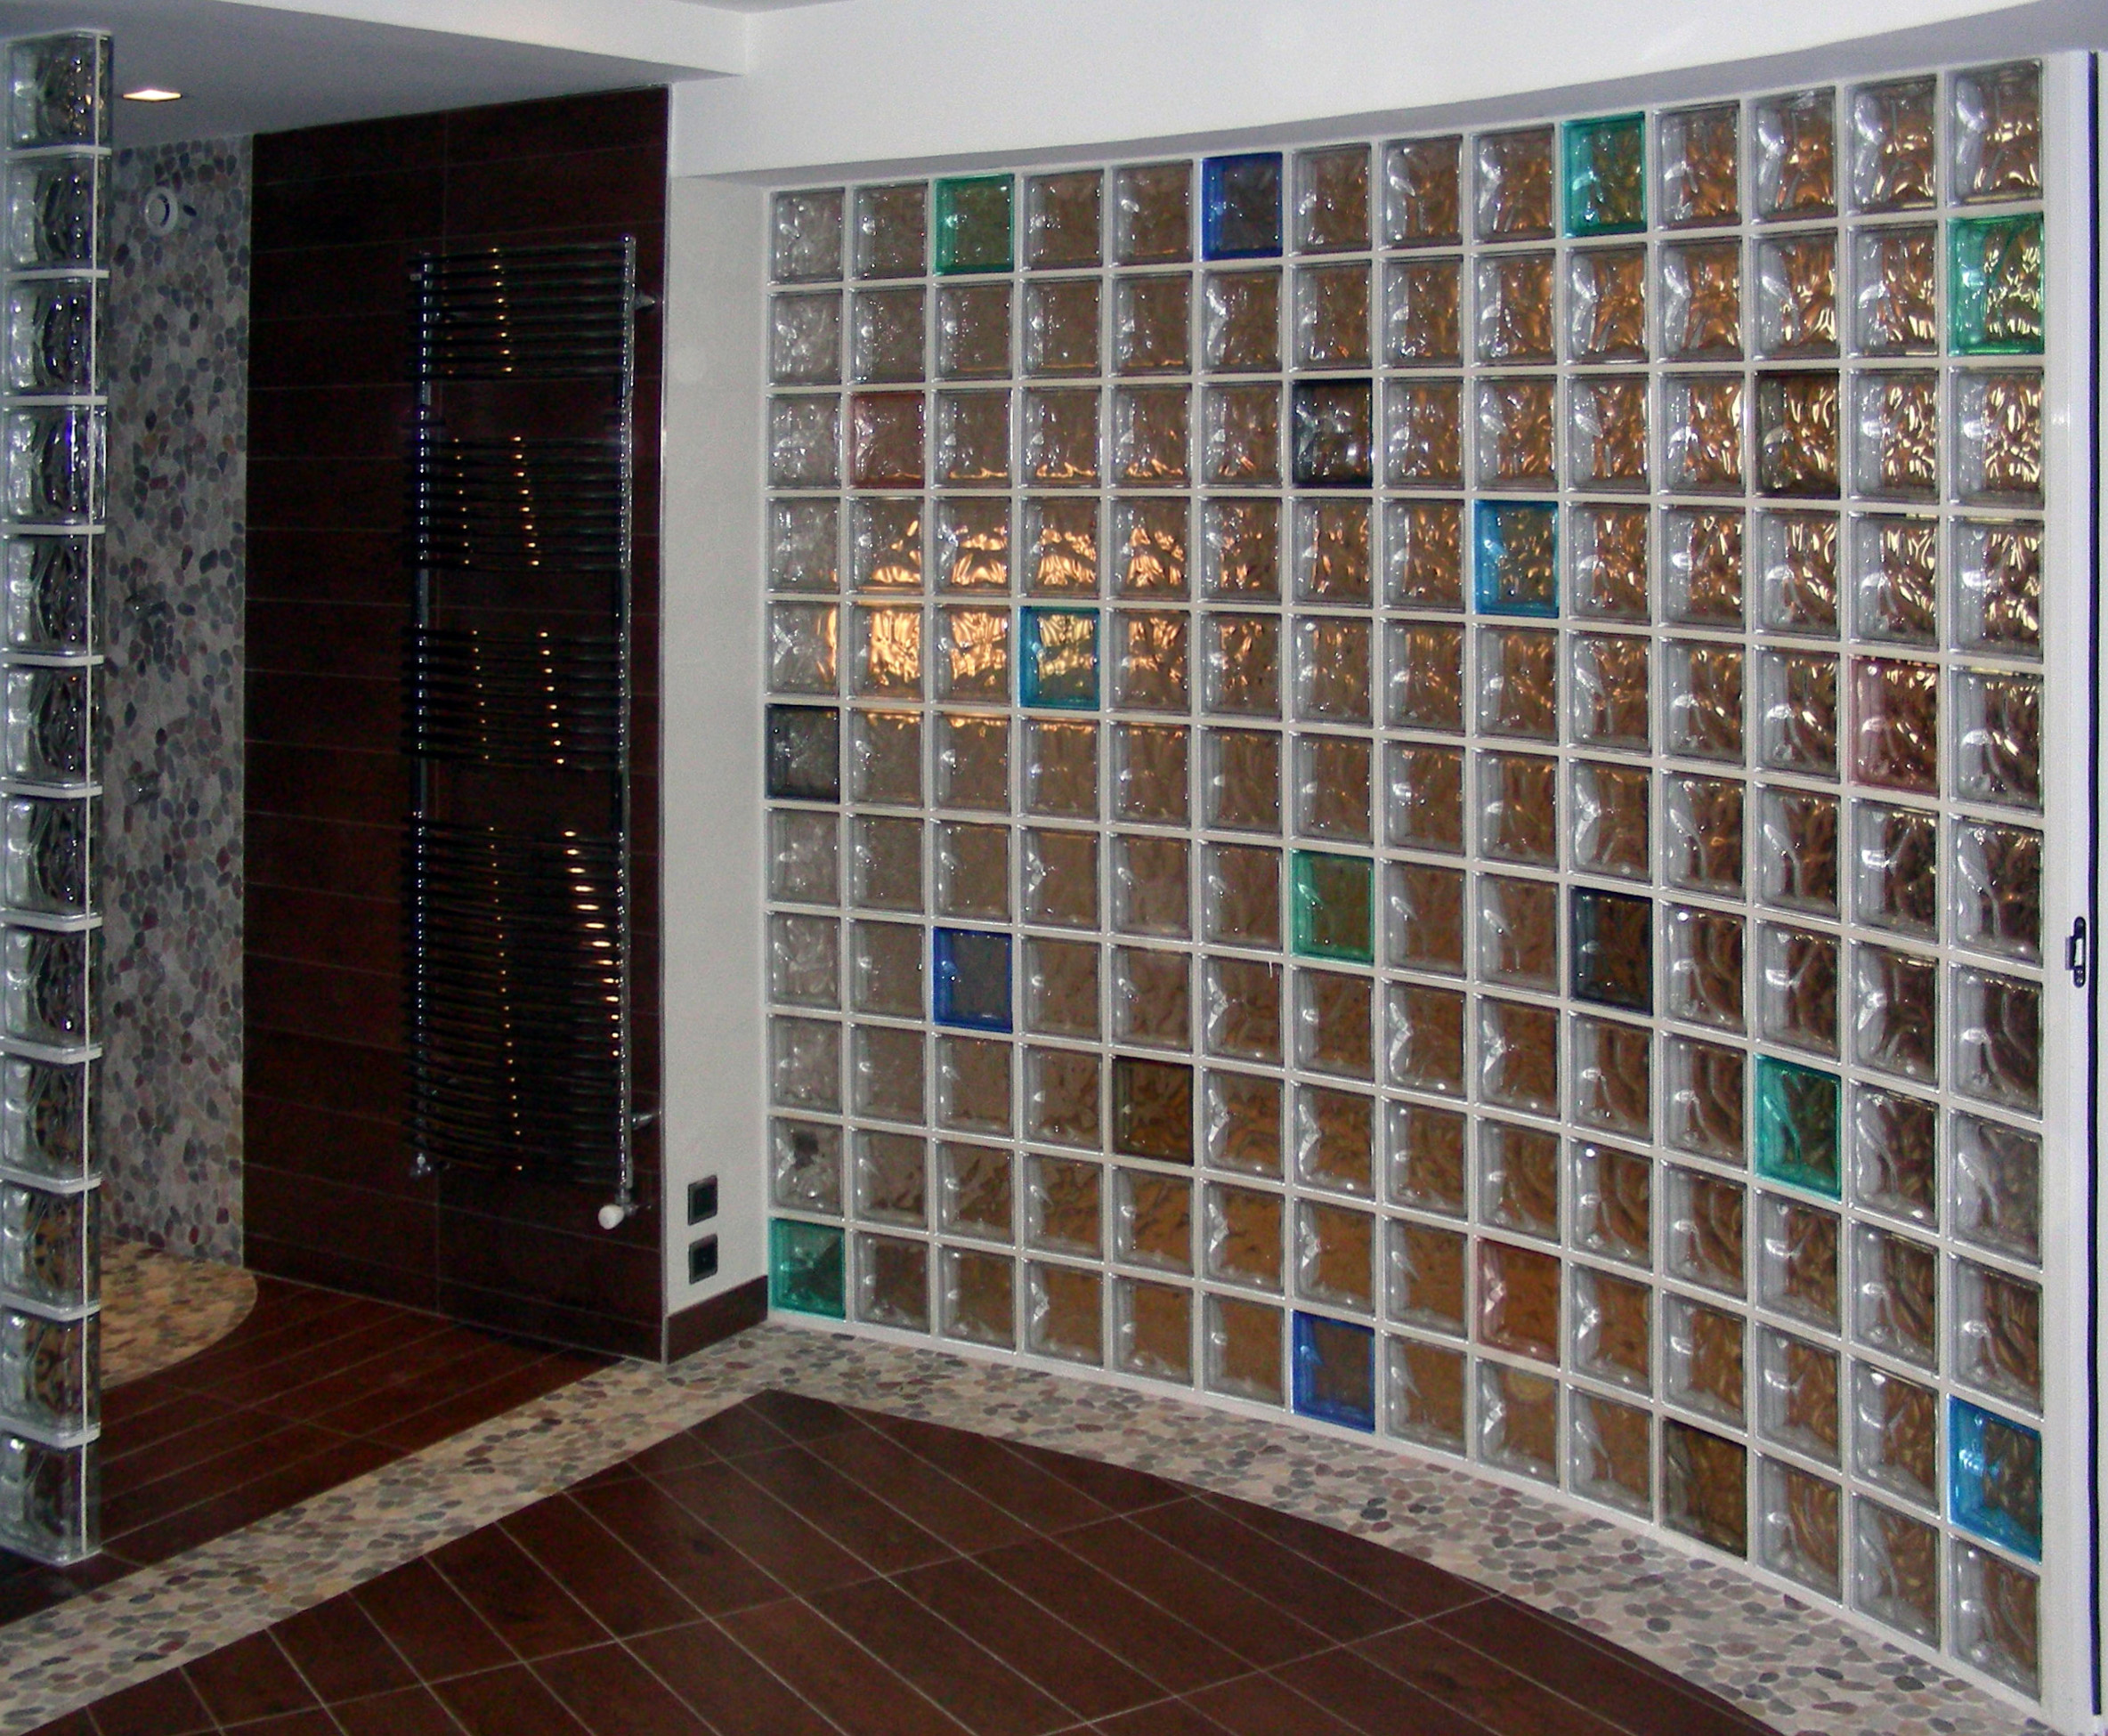 File wall rounded glass wikimedia commons - Glass bricks designs walls ...